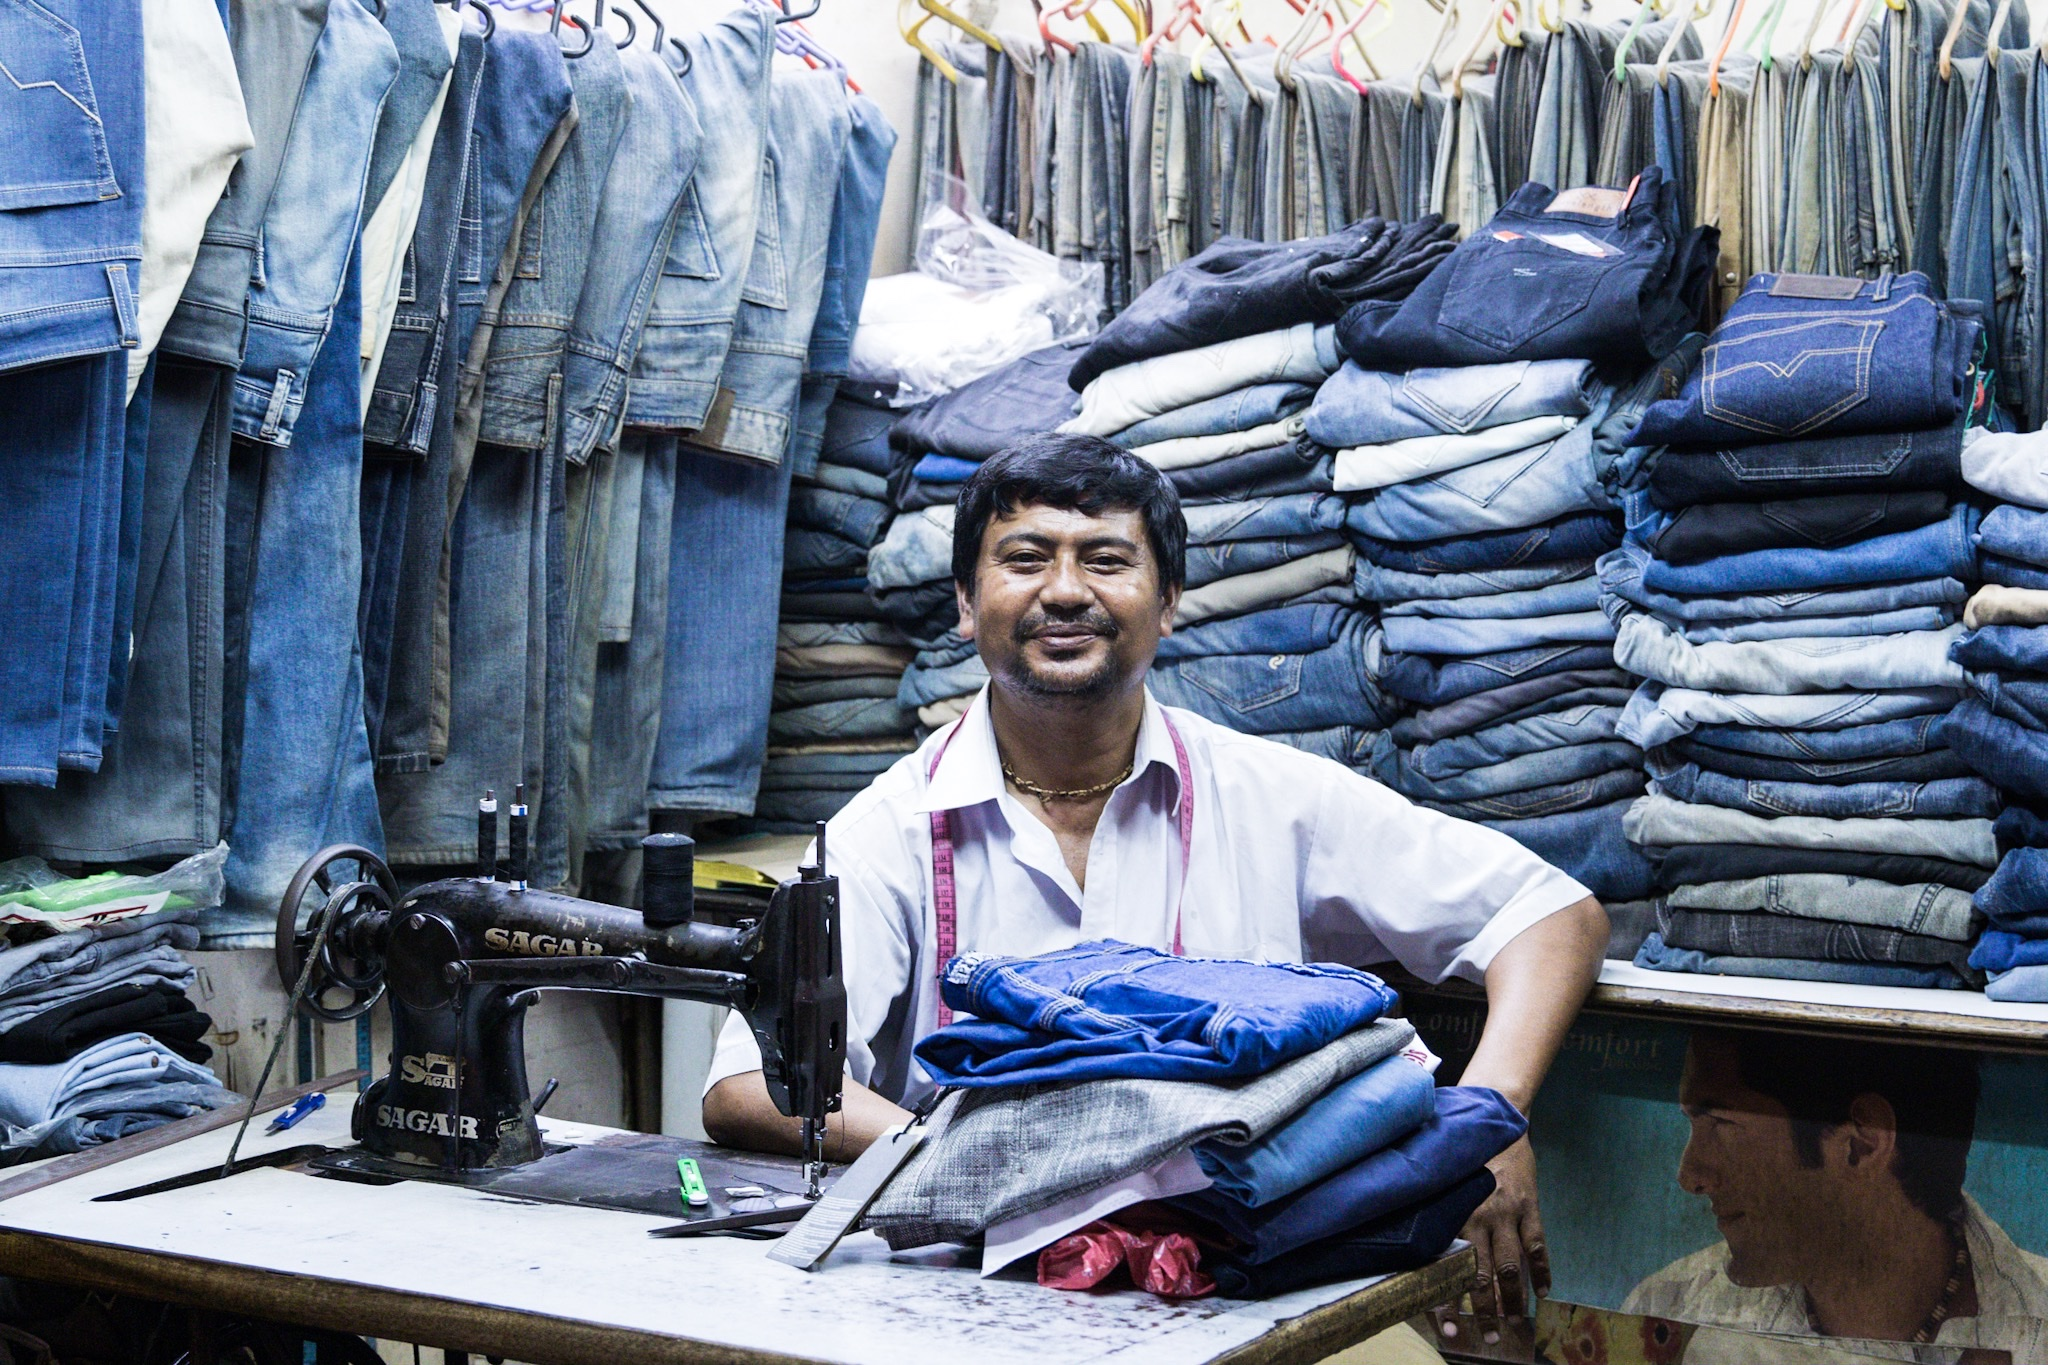 Portrait of a Tailor, Travel Photography Guwahati Assam